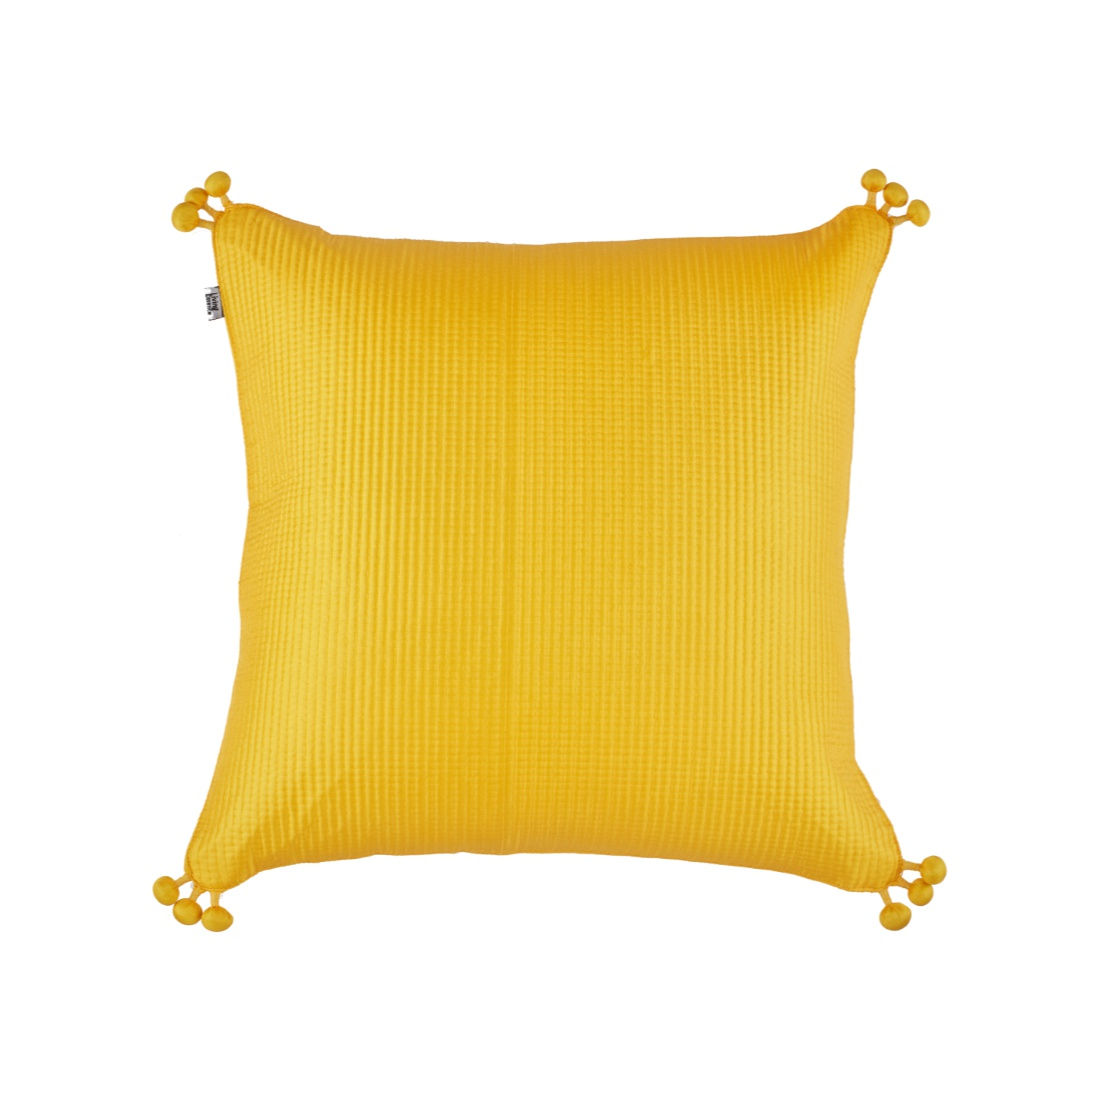 Pompom Cushion Cover 40X40 Cm Yellow Polyester Cushion Covers in Yellow Colour by Living Essence